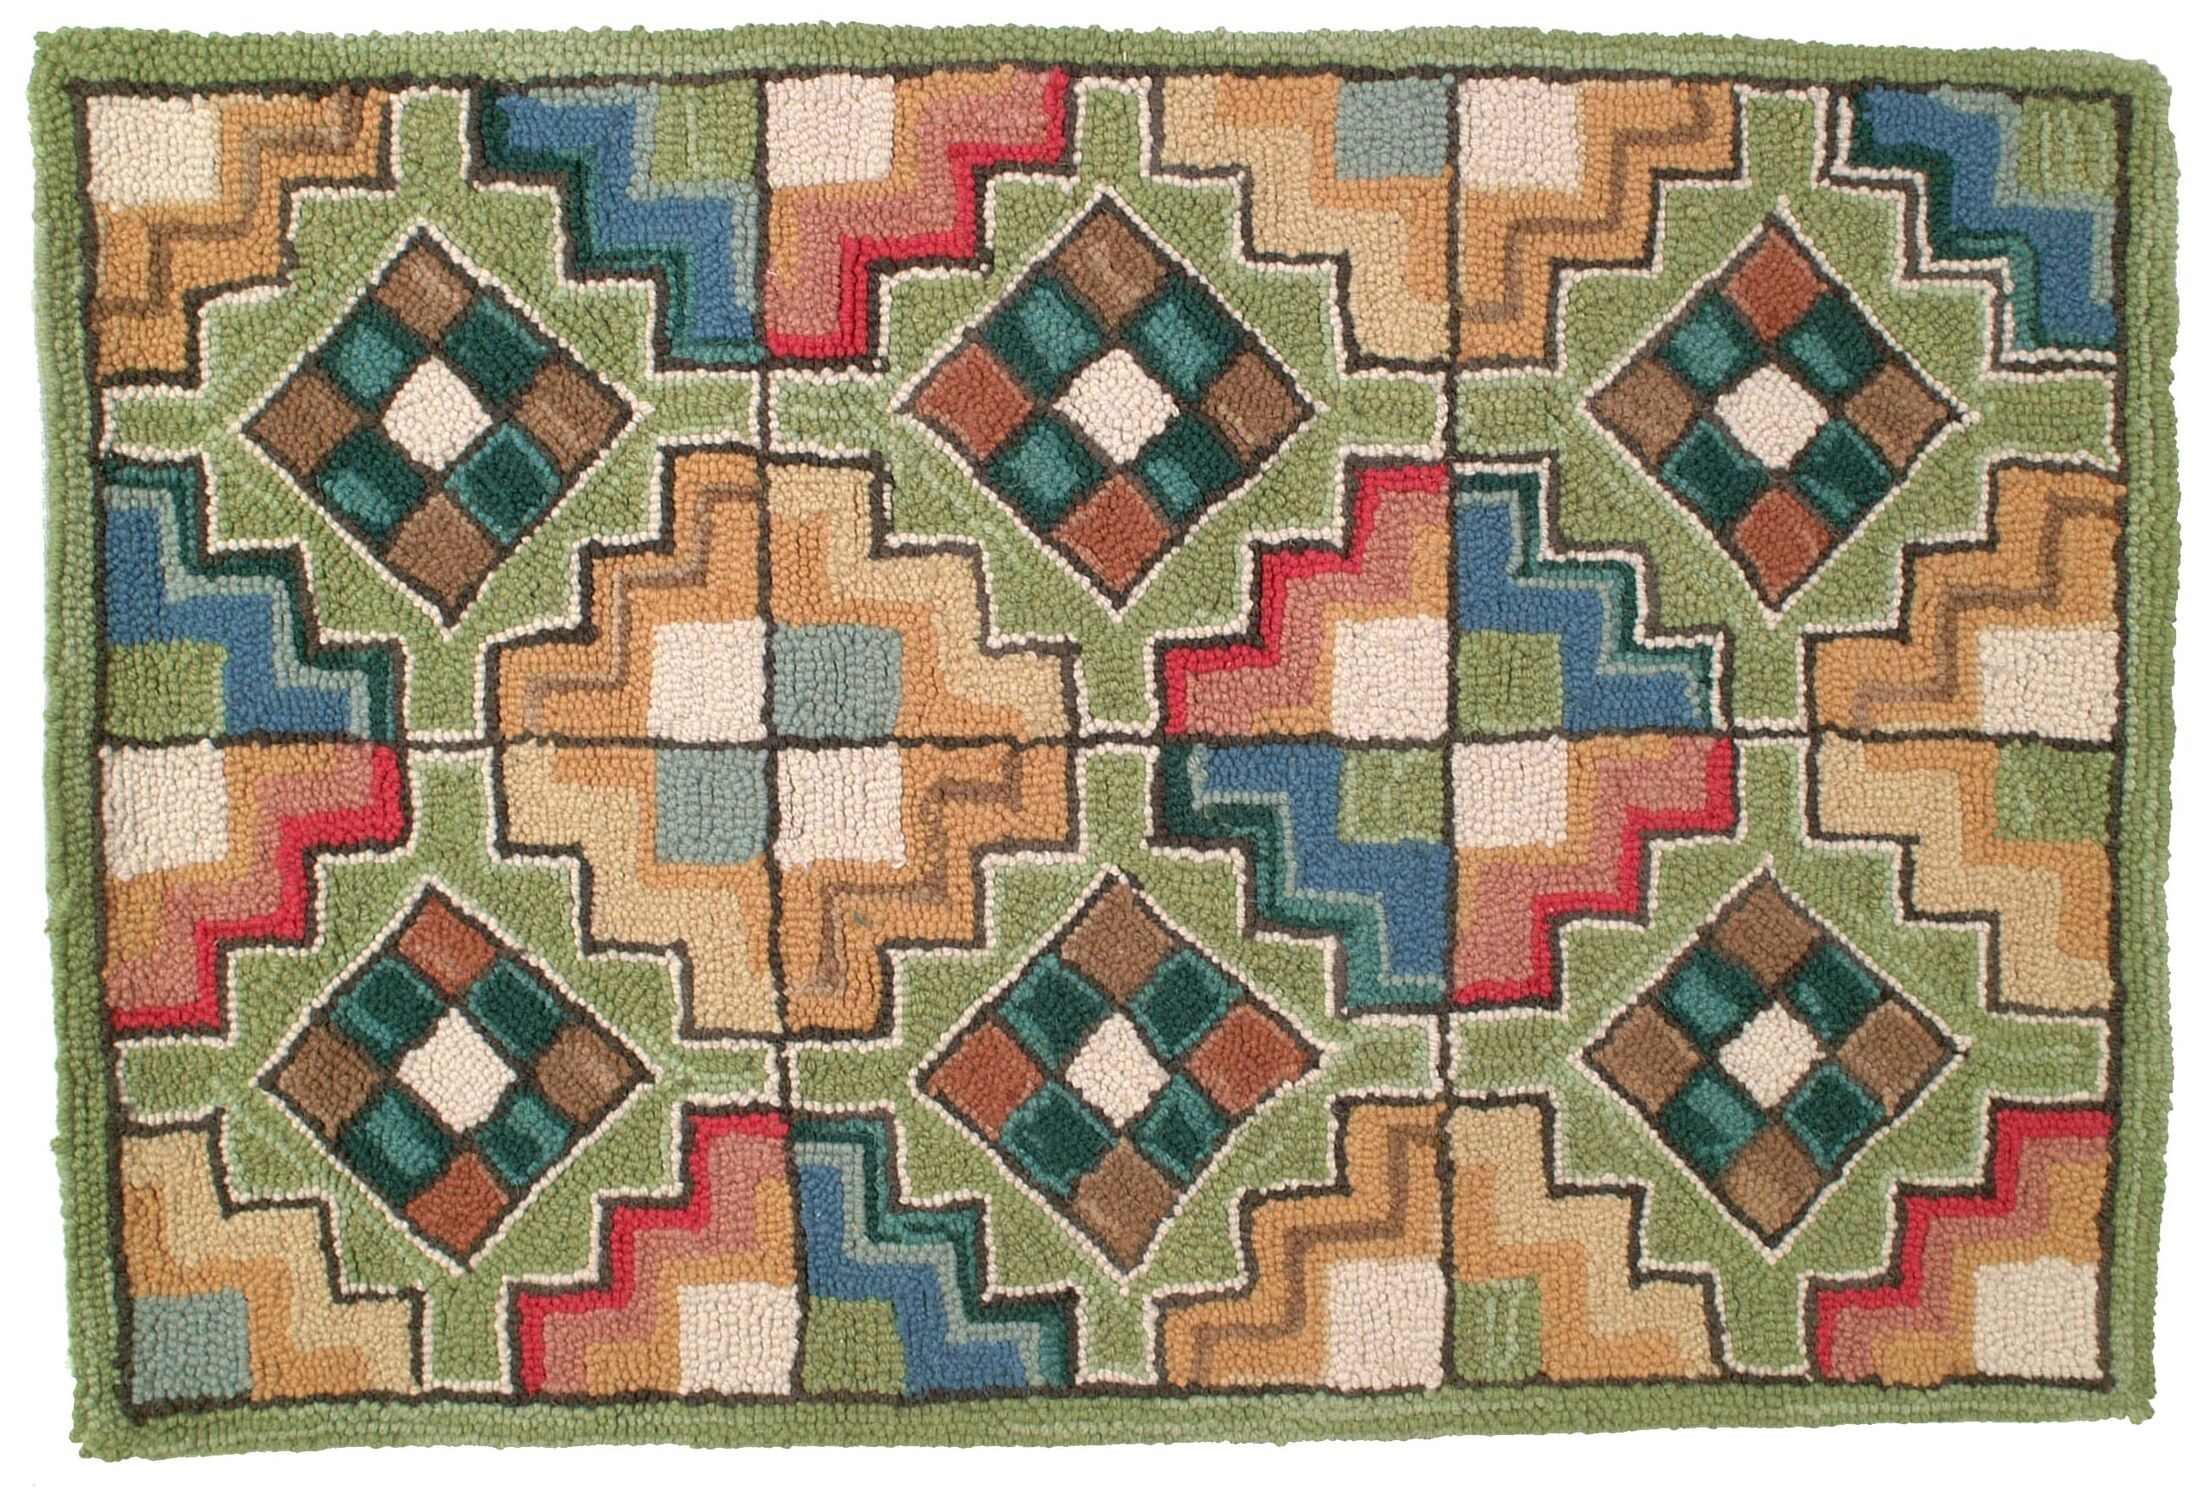 Chatsworth Hand Tufted Wool Green Area Rug Rug Size: 6' x 9'